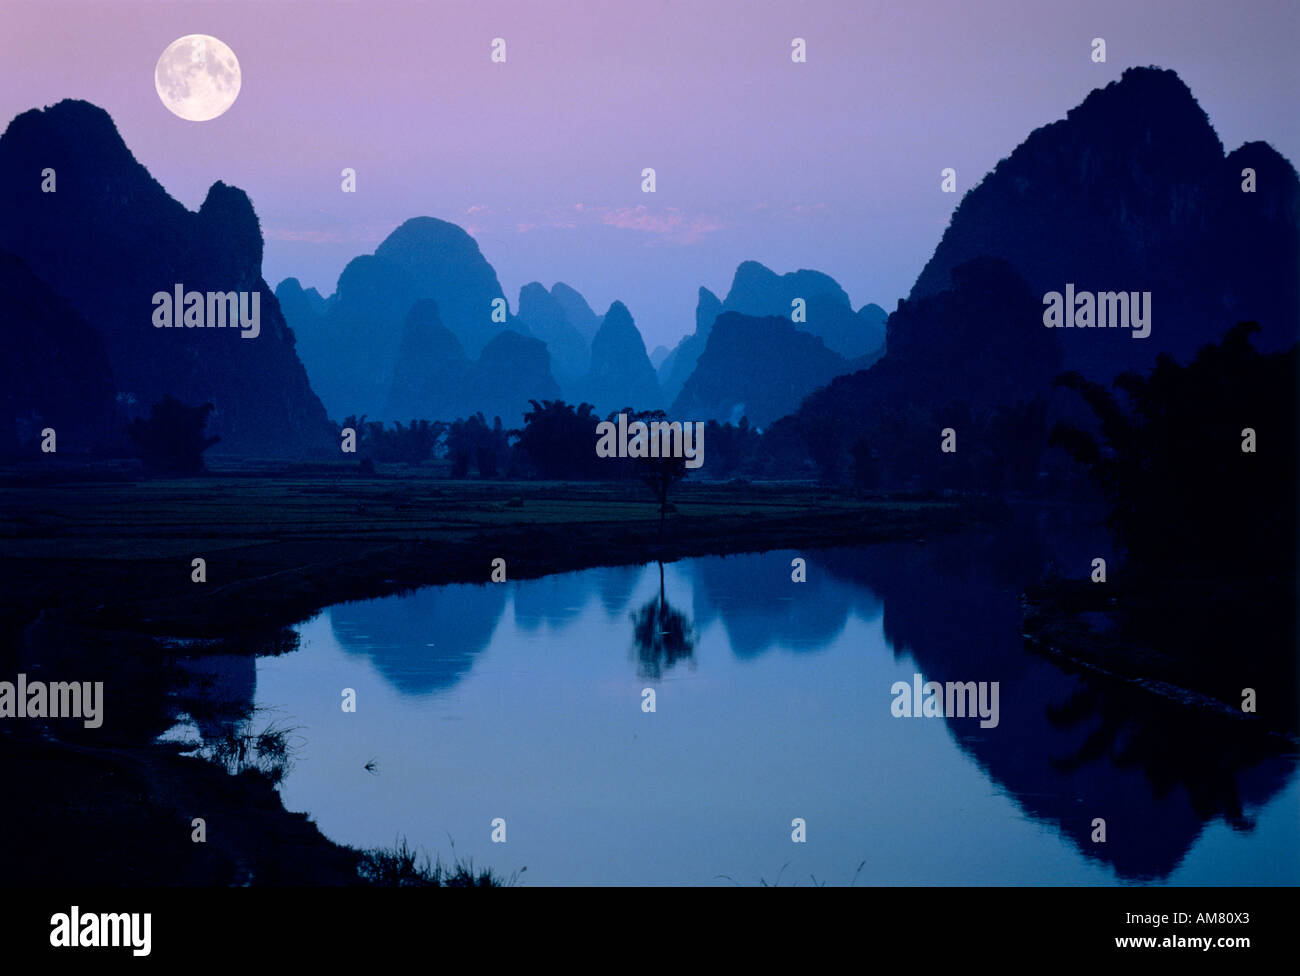 Lake with fullmoon and Mountains at night - Stock Image